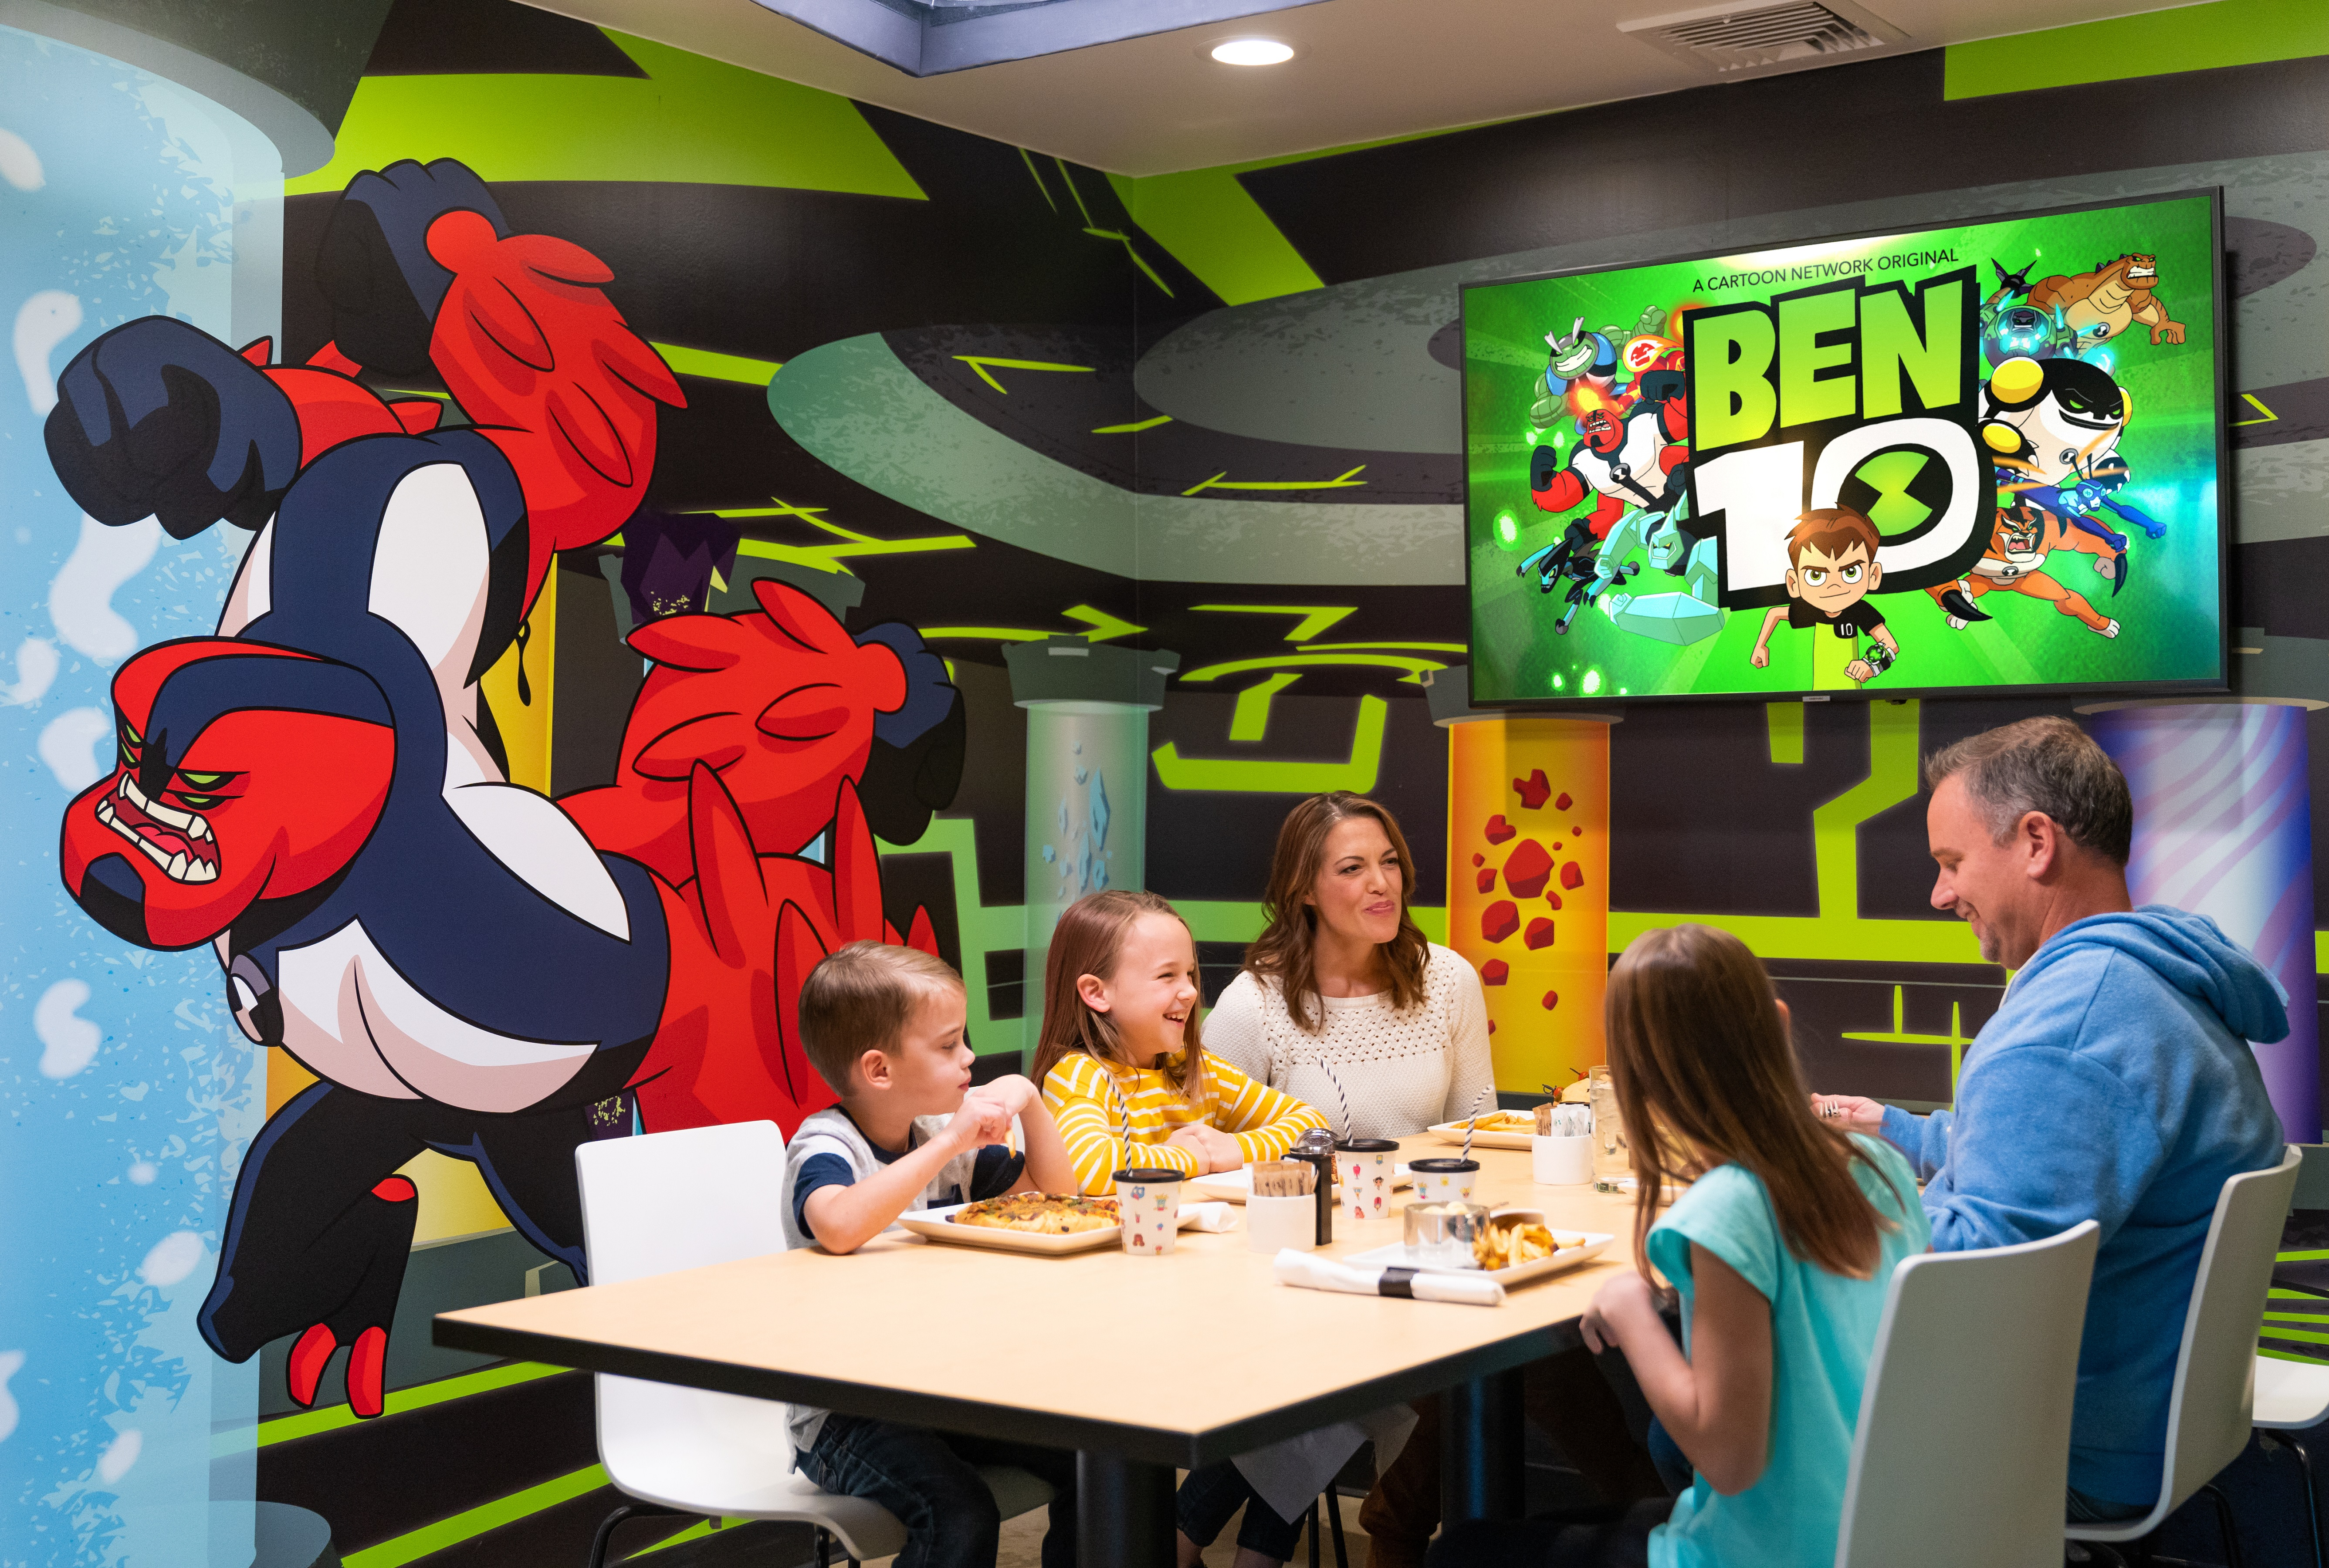 Family laughing and eating in a Ben 10 Dream Cube